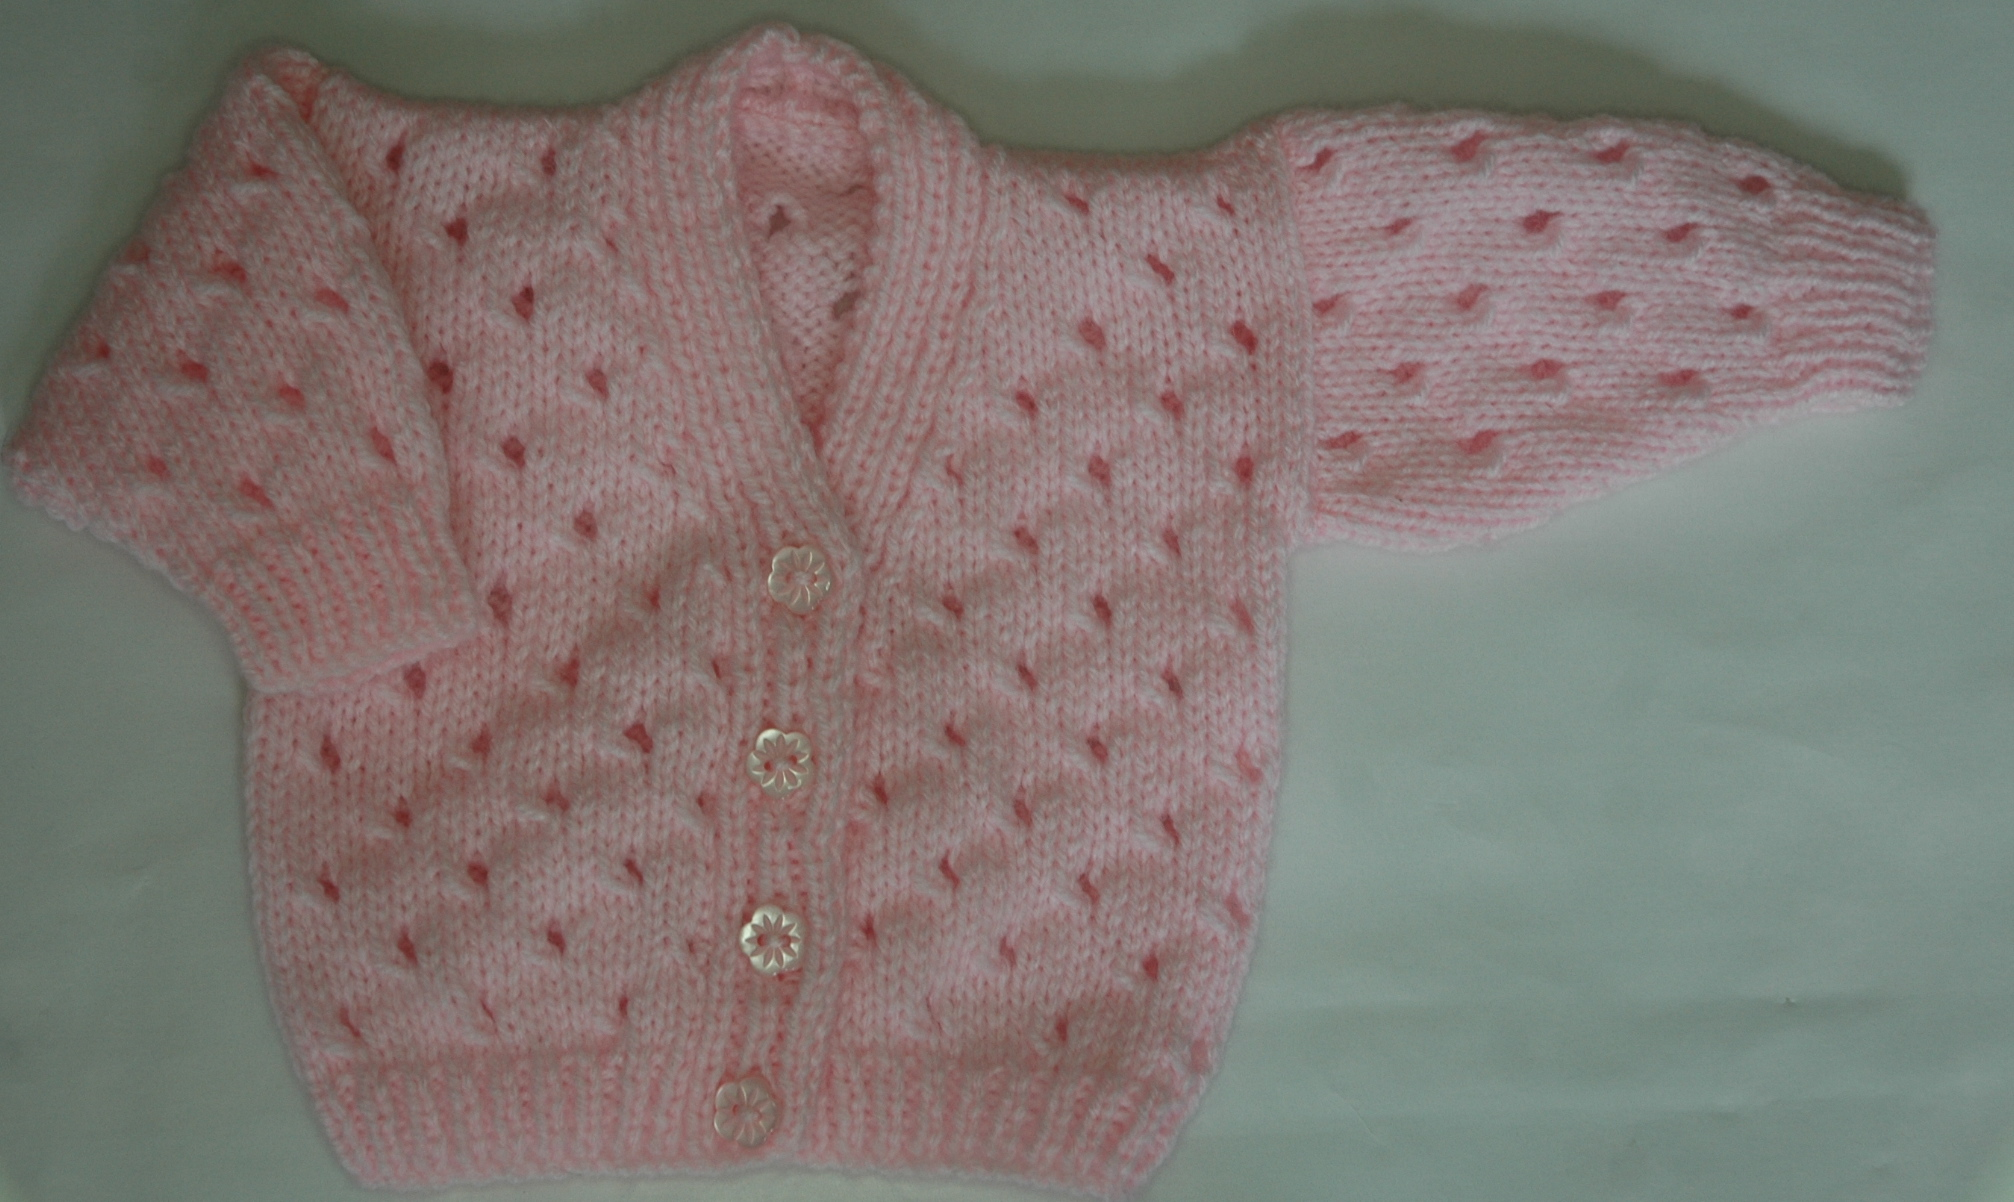 Free Baby Knitting Patterns Dk : Knitting Pattern For Baby Cardigan Uk - Cardigan With Buttons